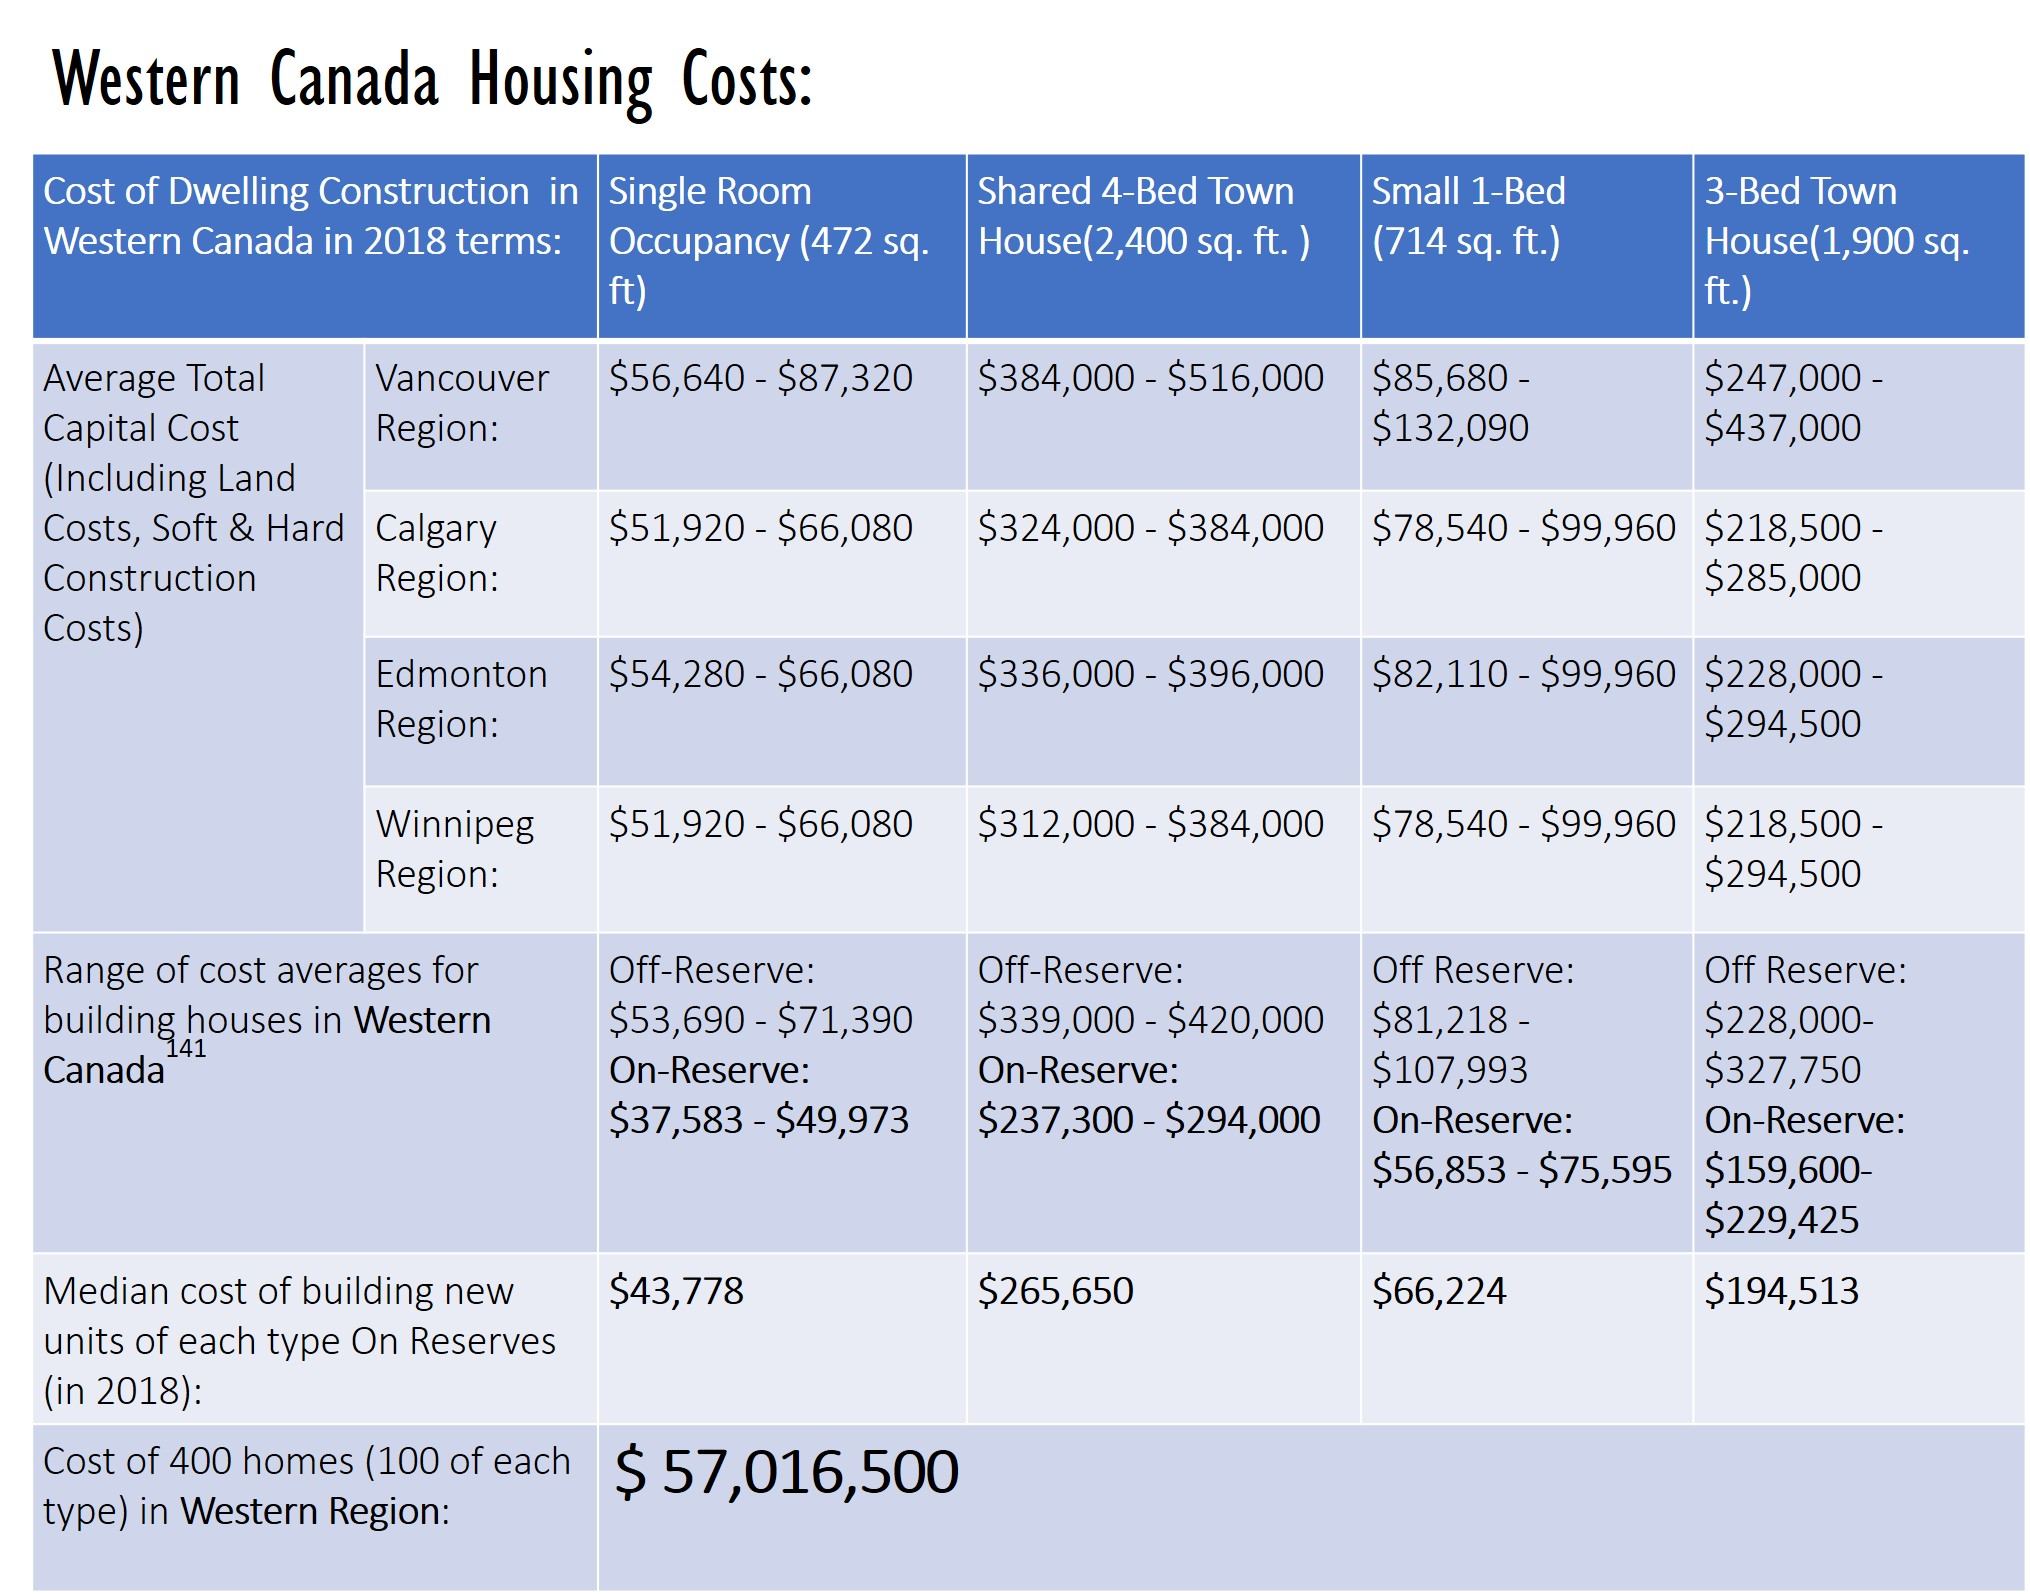 Western Canada Housing Costs: Cost of 400 homes (100 of each type) in Western Region $ 57,016,500